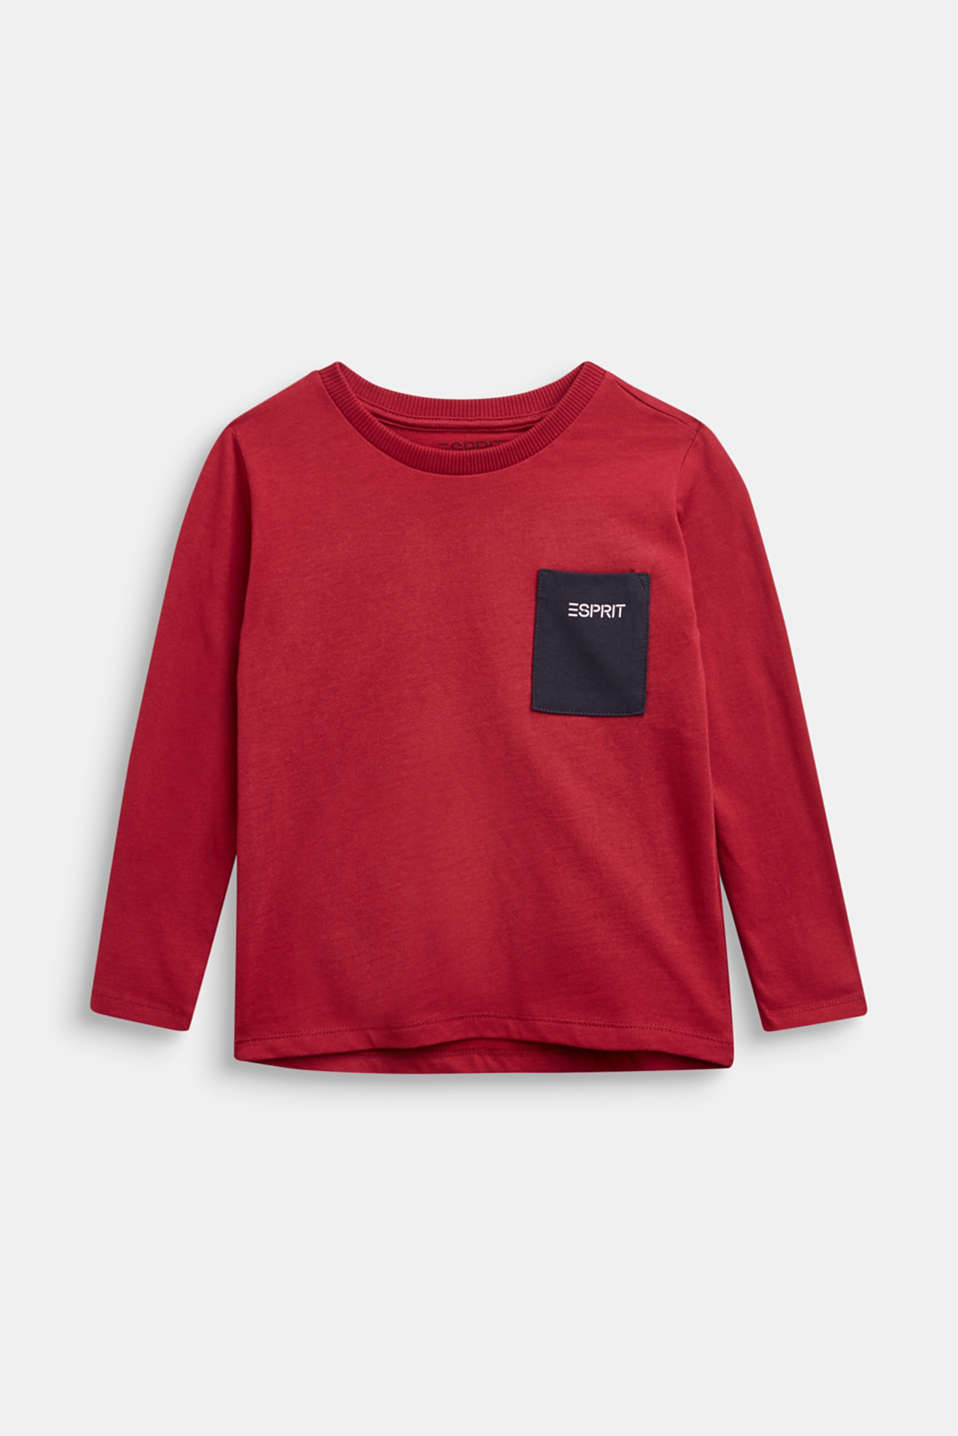 Esprit - Long sleeve top with a pocket, 100% cotton